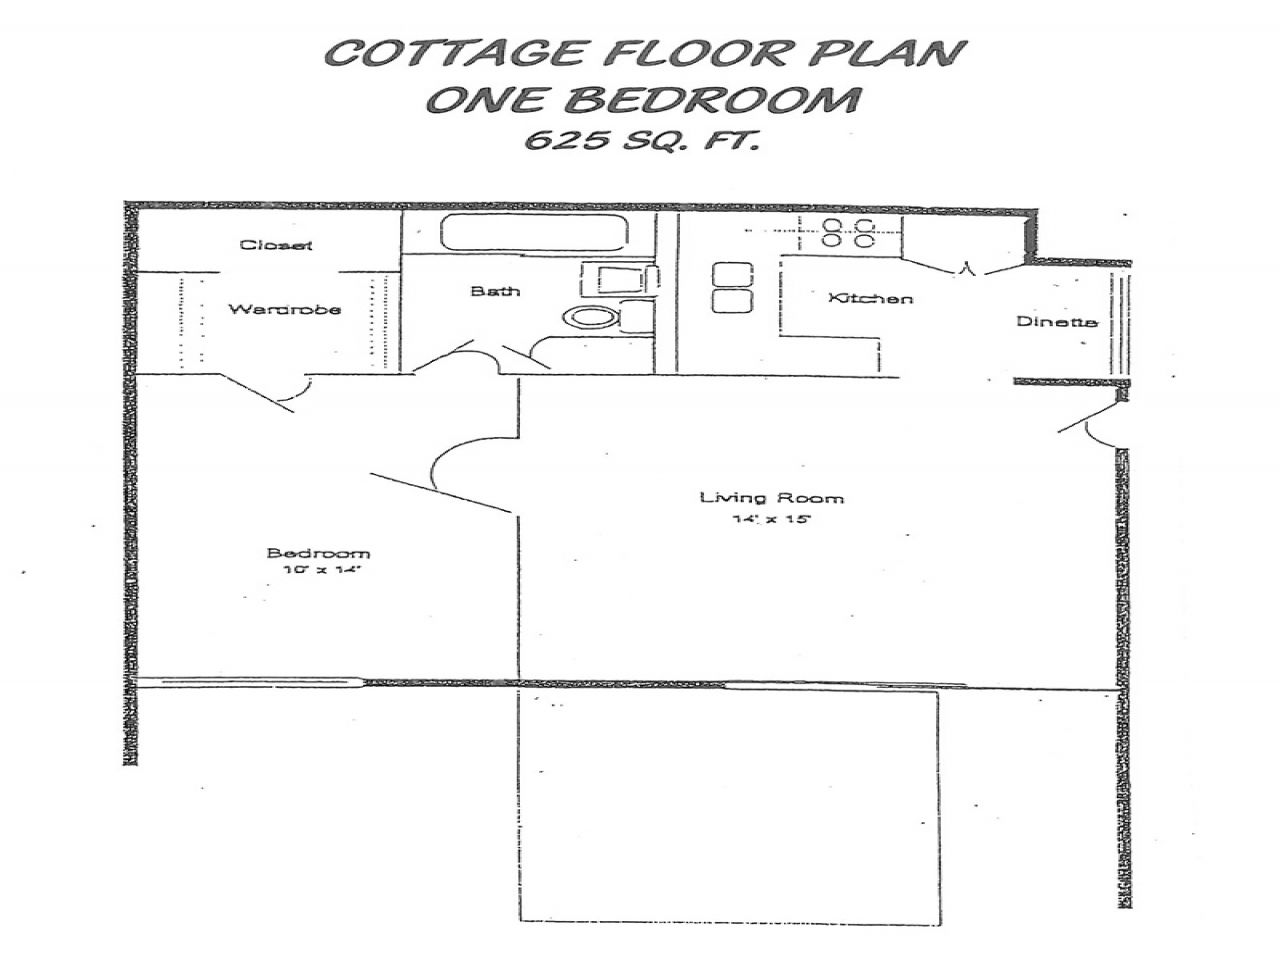 1 Bedroom Cottage Floor Plans 1 Bedroom Mobile Homes One